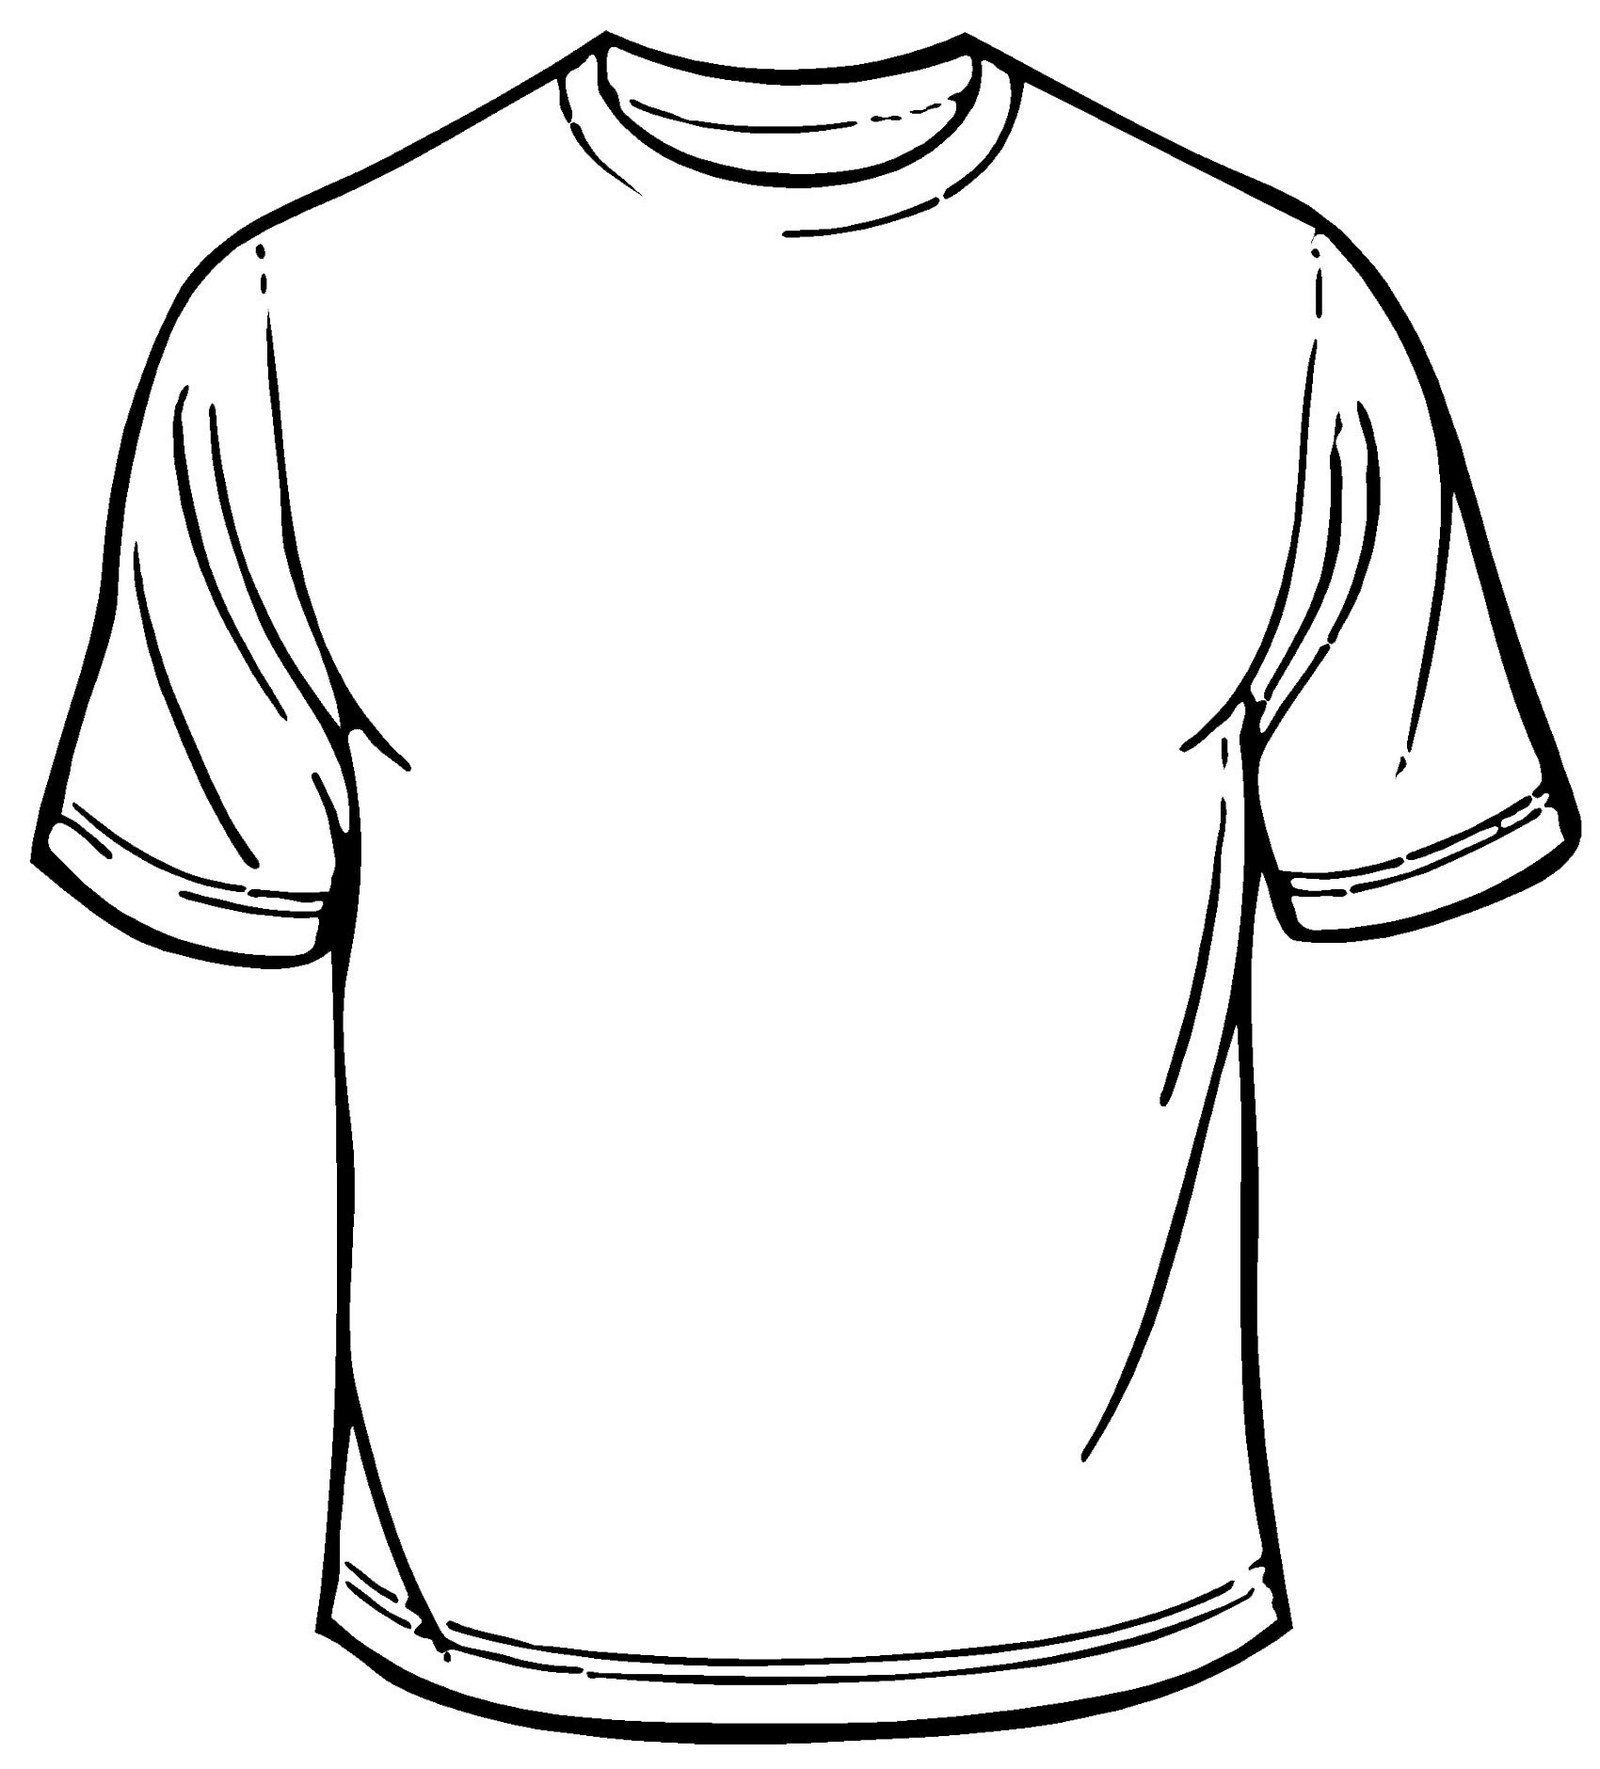 blank t shirt coloring sheet printable | t-shirt coloring page ...